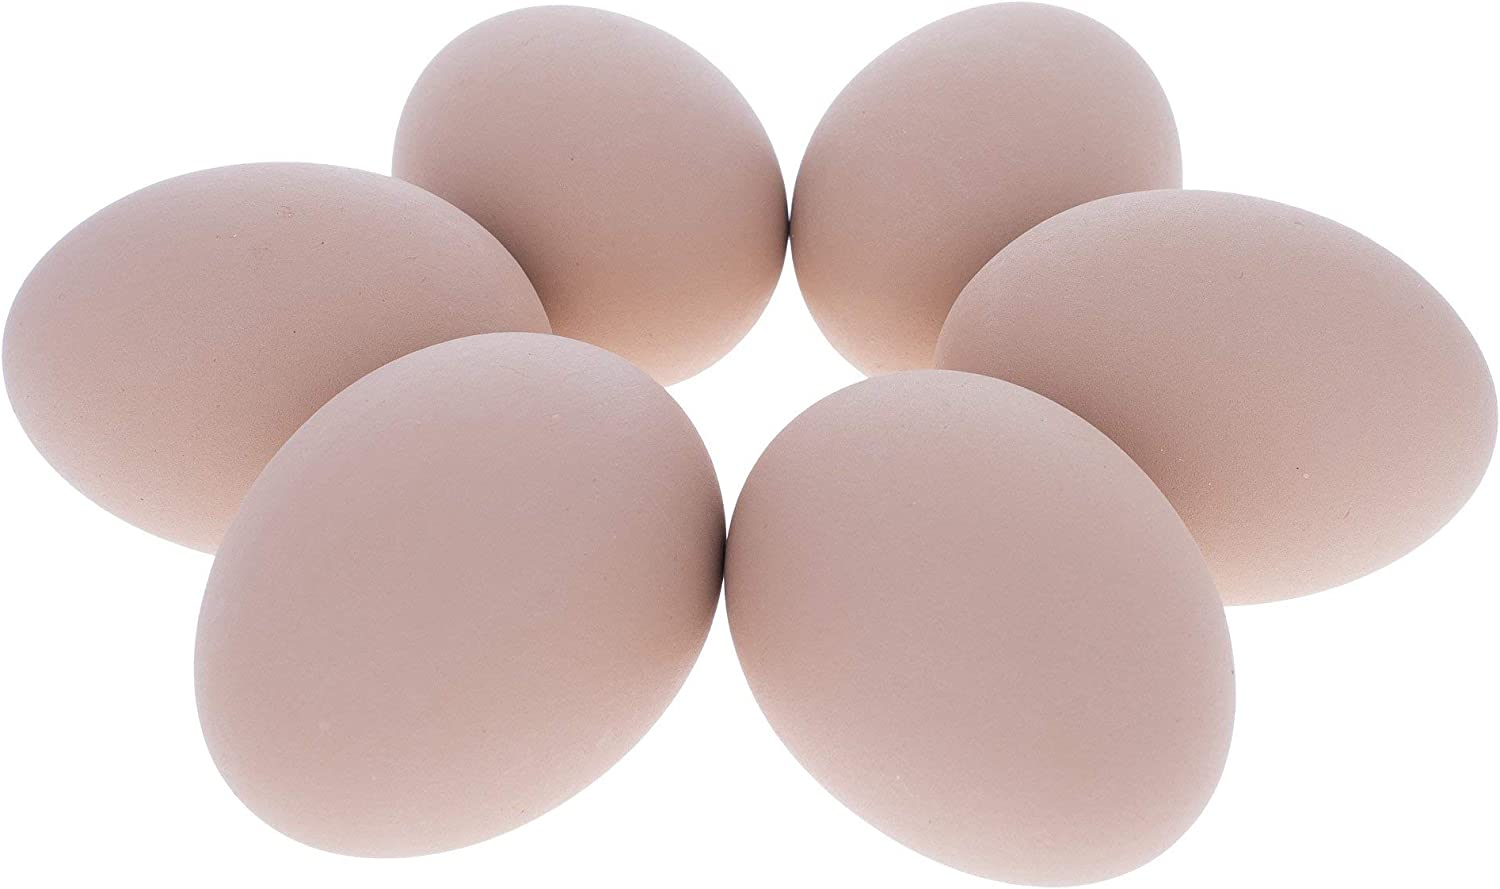 Set of 6 Brown Ceramic Large special Sales price Inches Eggs Chicken 2.3